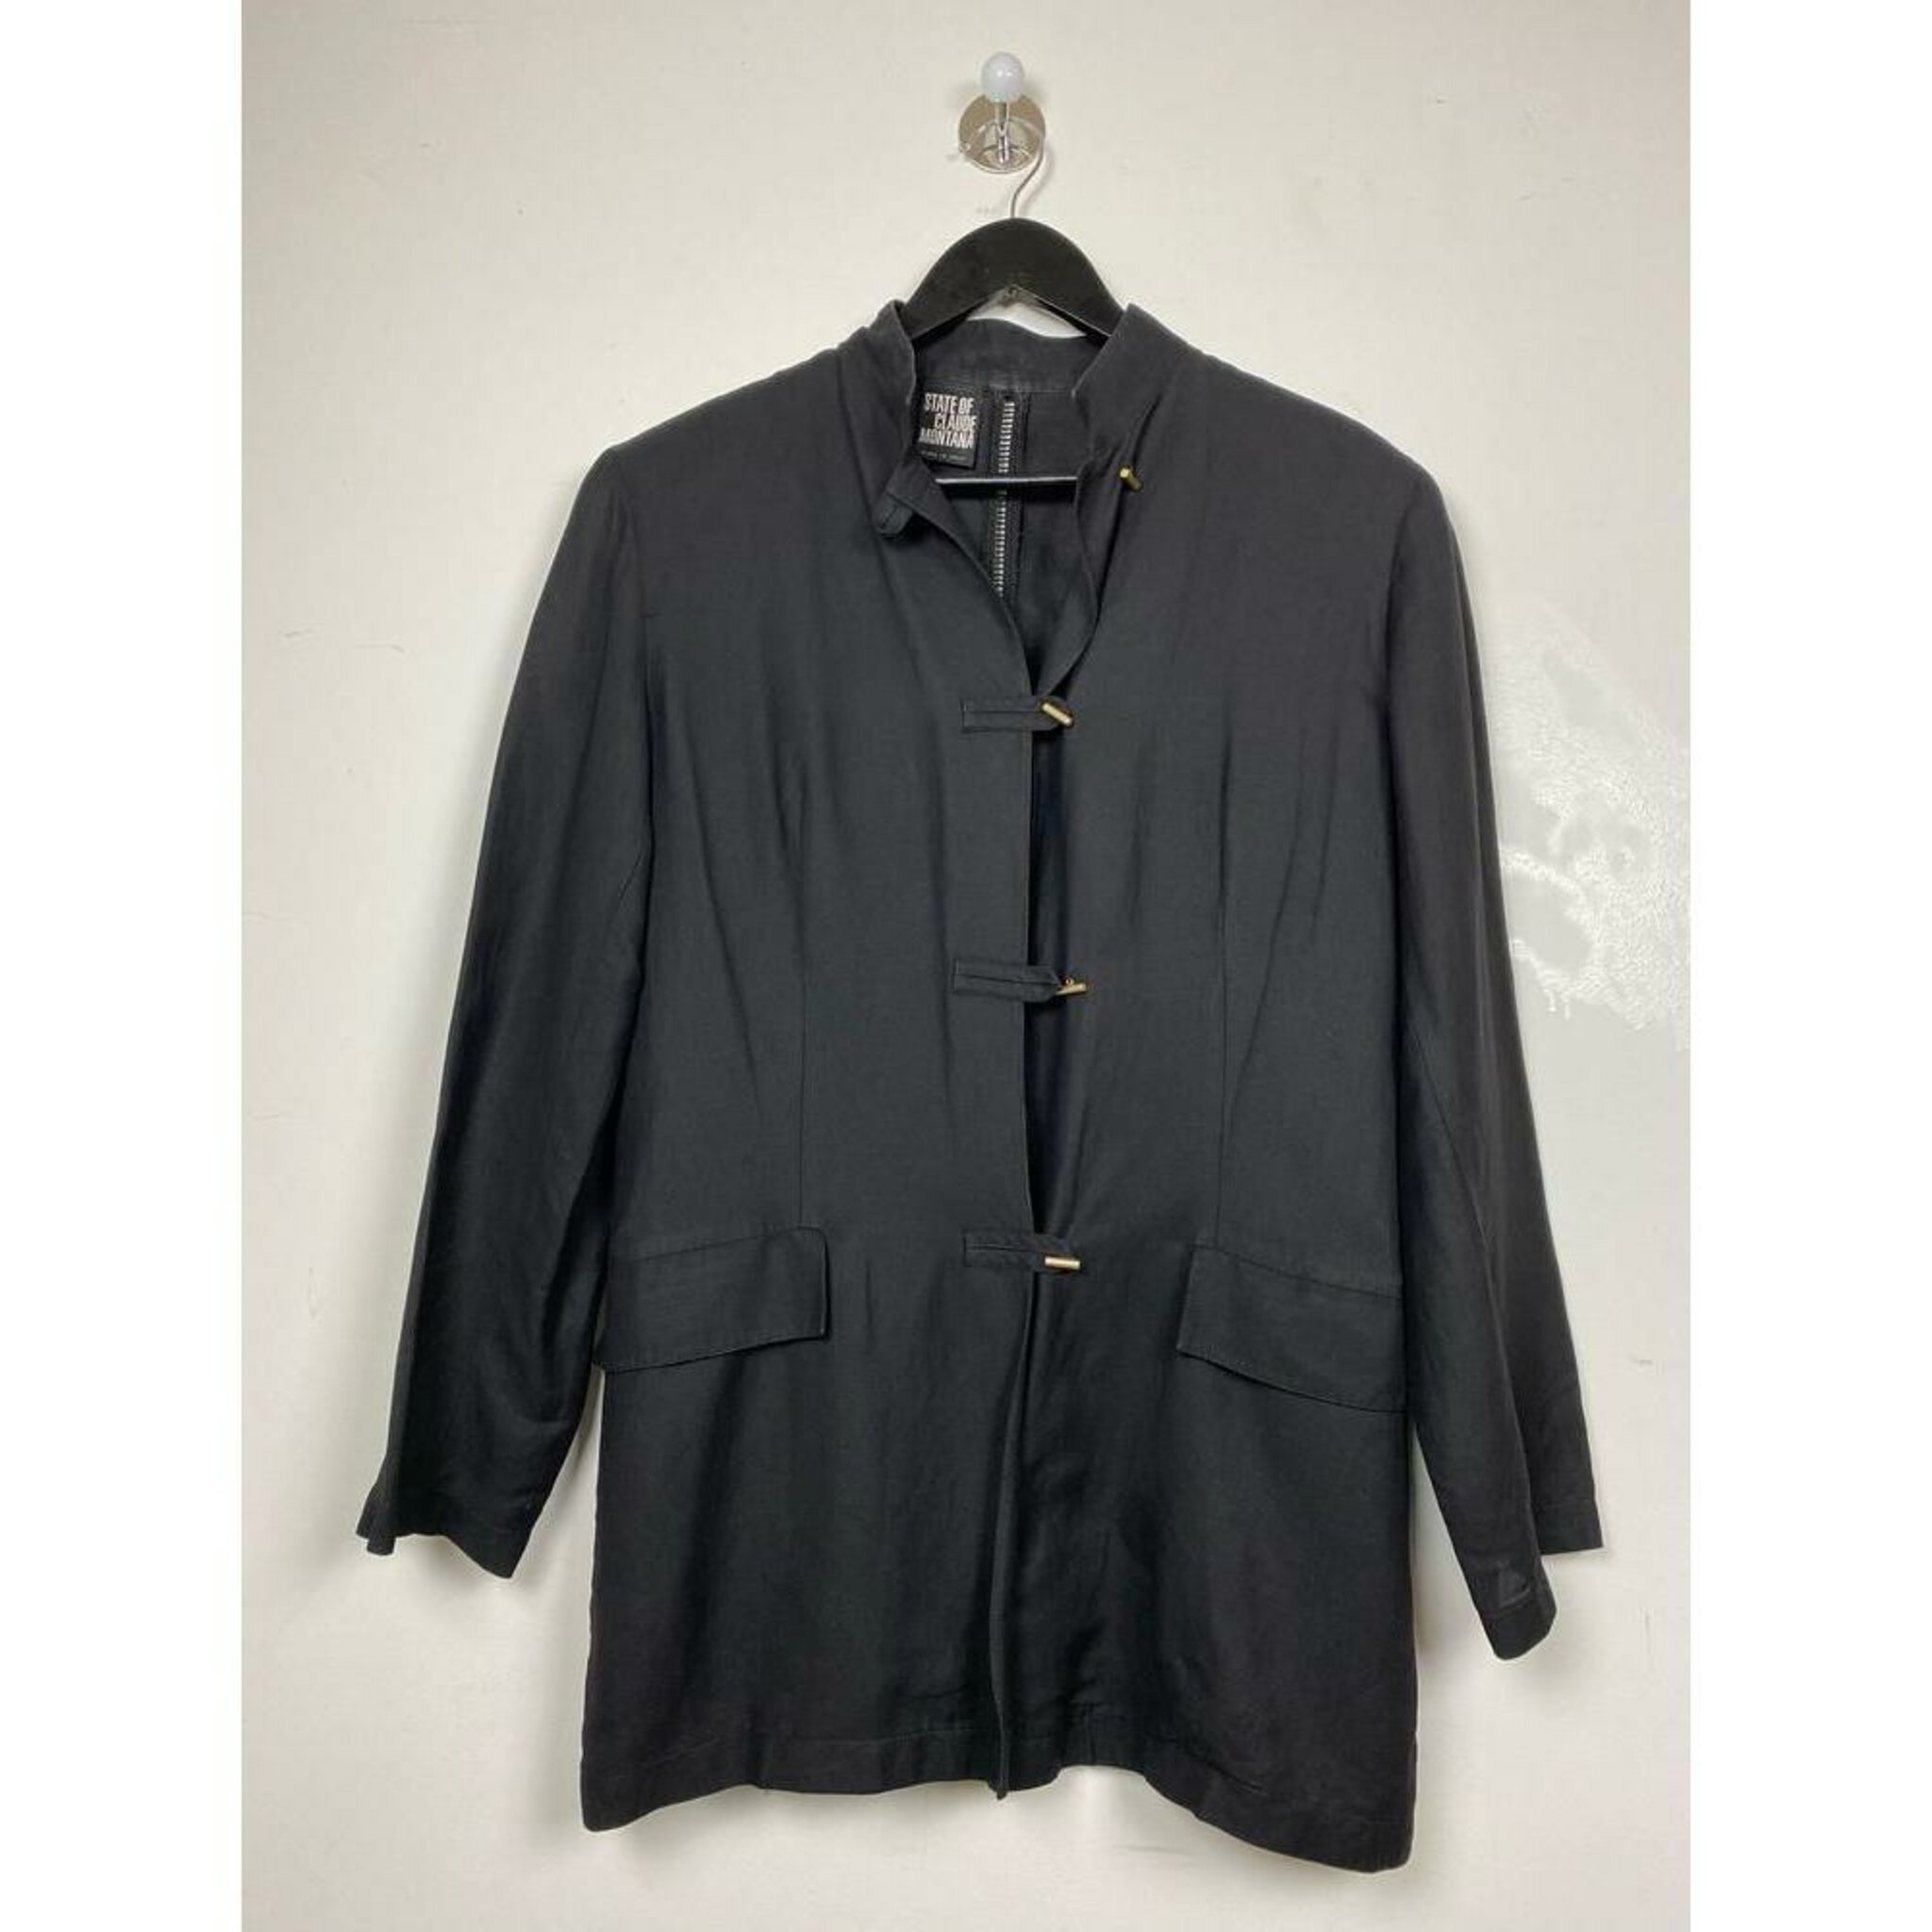 80's Jacket by Claude Montana, S